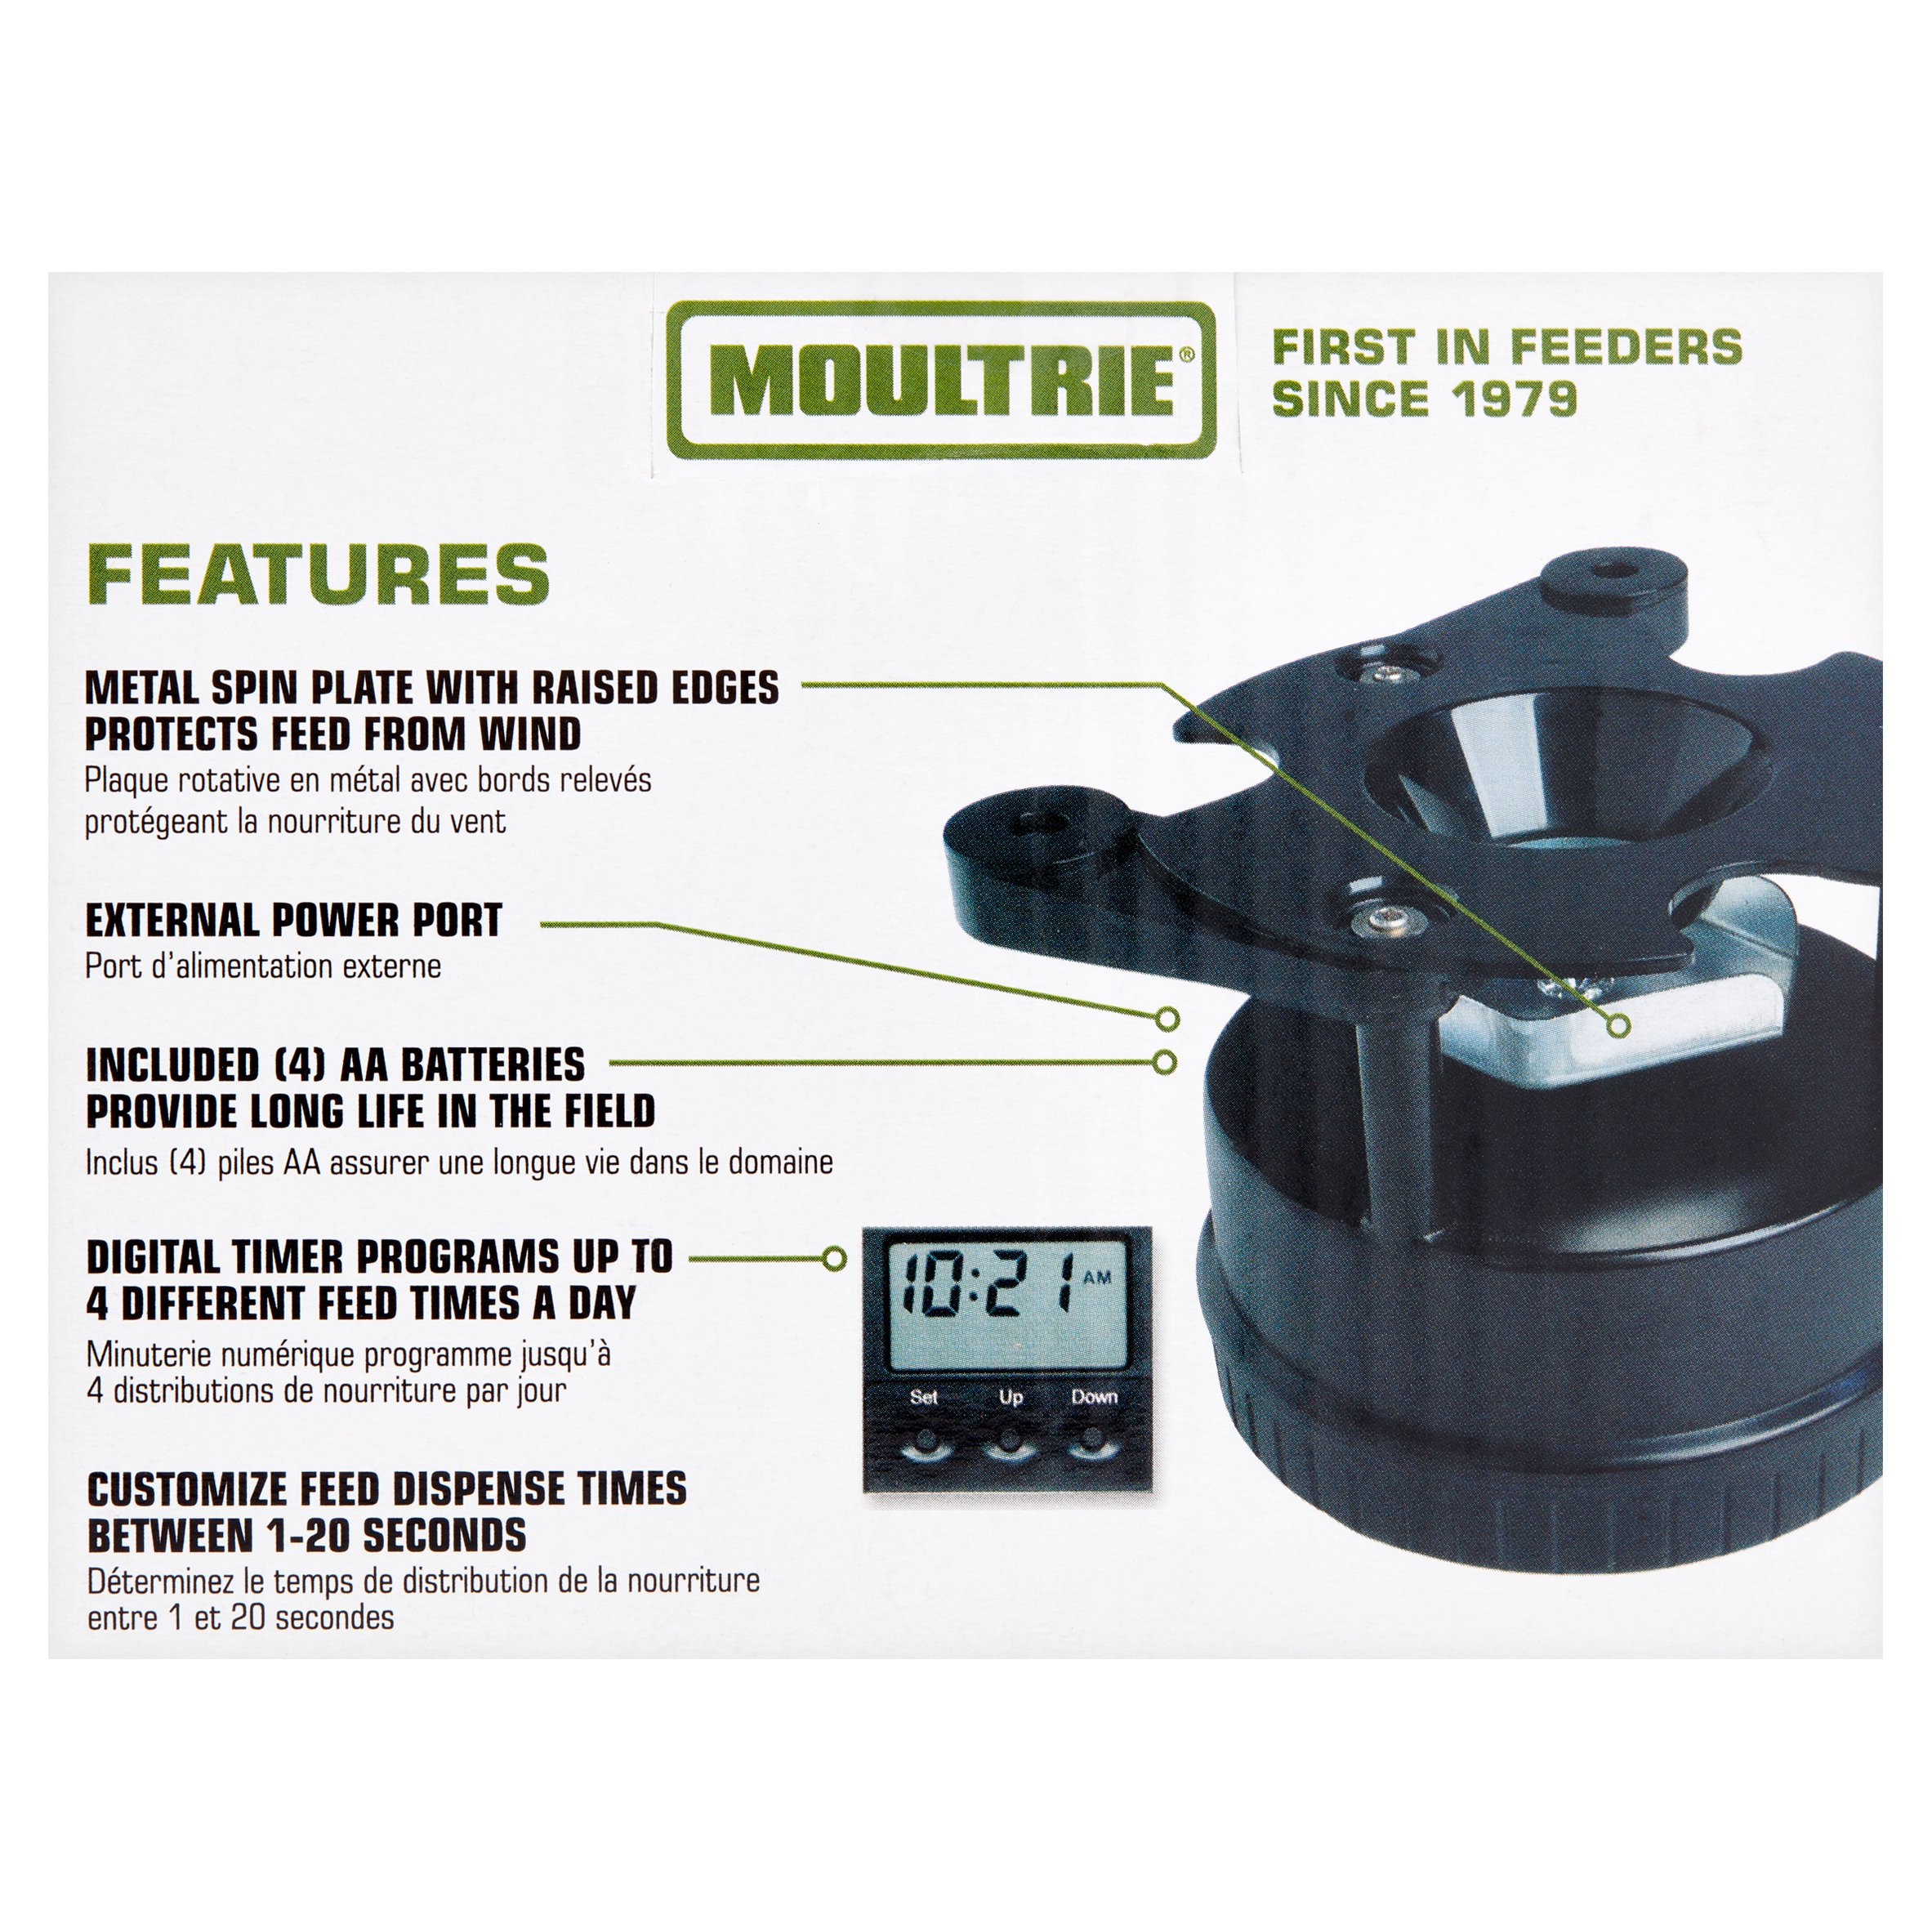 Moultrie All-in-One Timer Feeder Kit - Walmart com